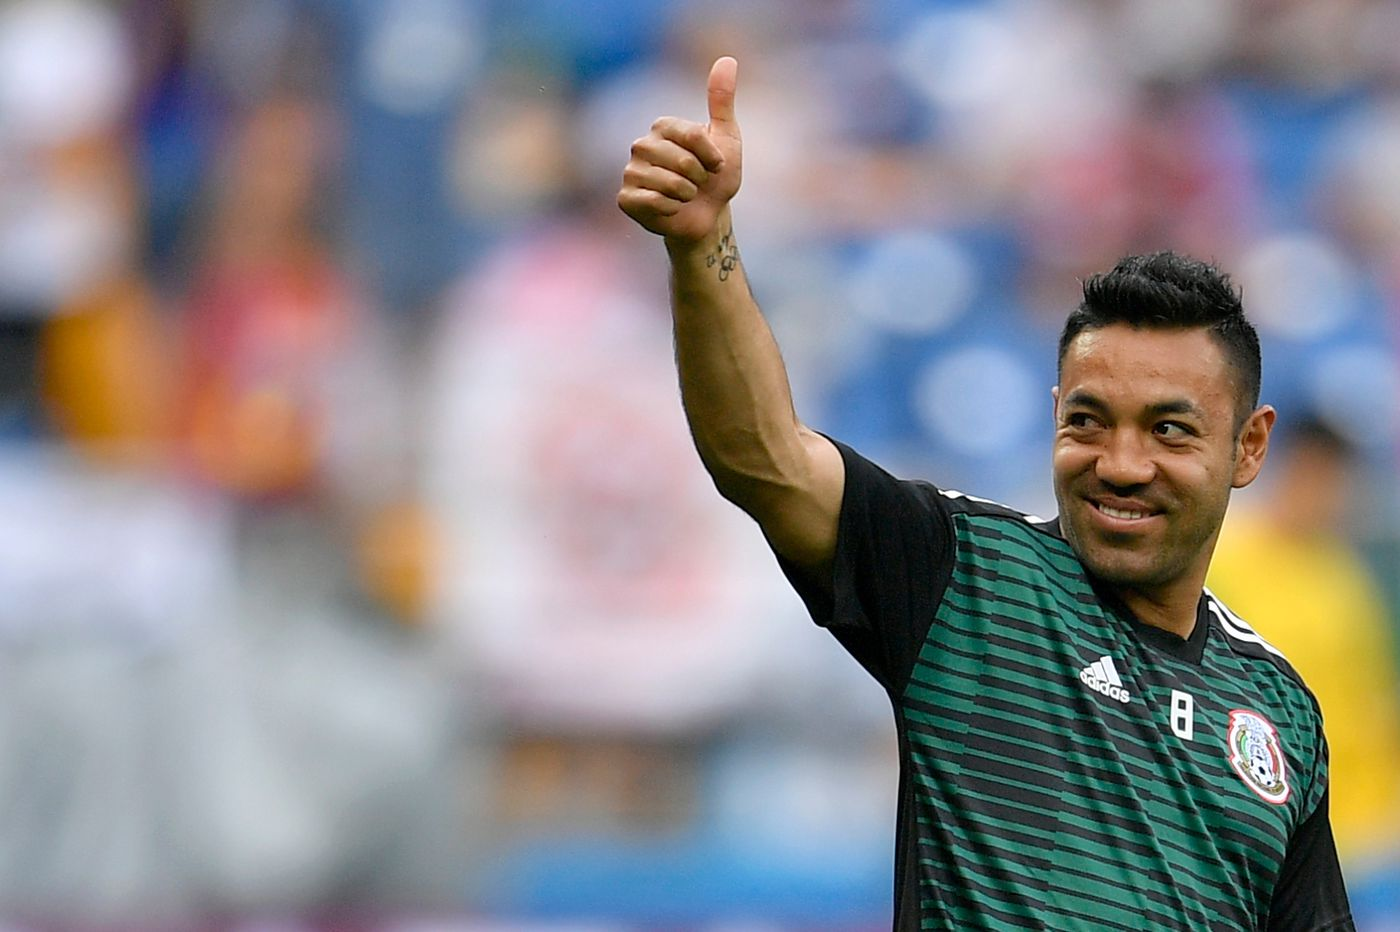 Union's Marco Fabián called up to Mexico national team ahead of Gold Cup, but what that means is unclear